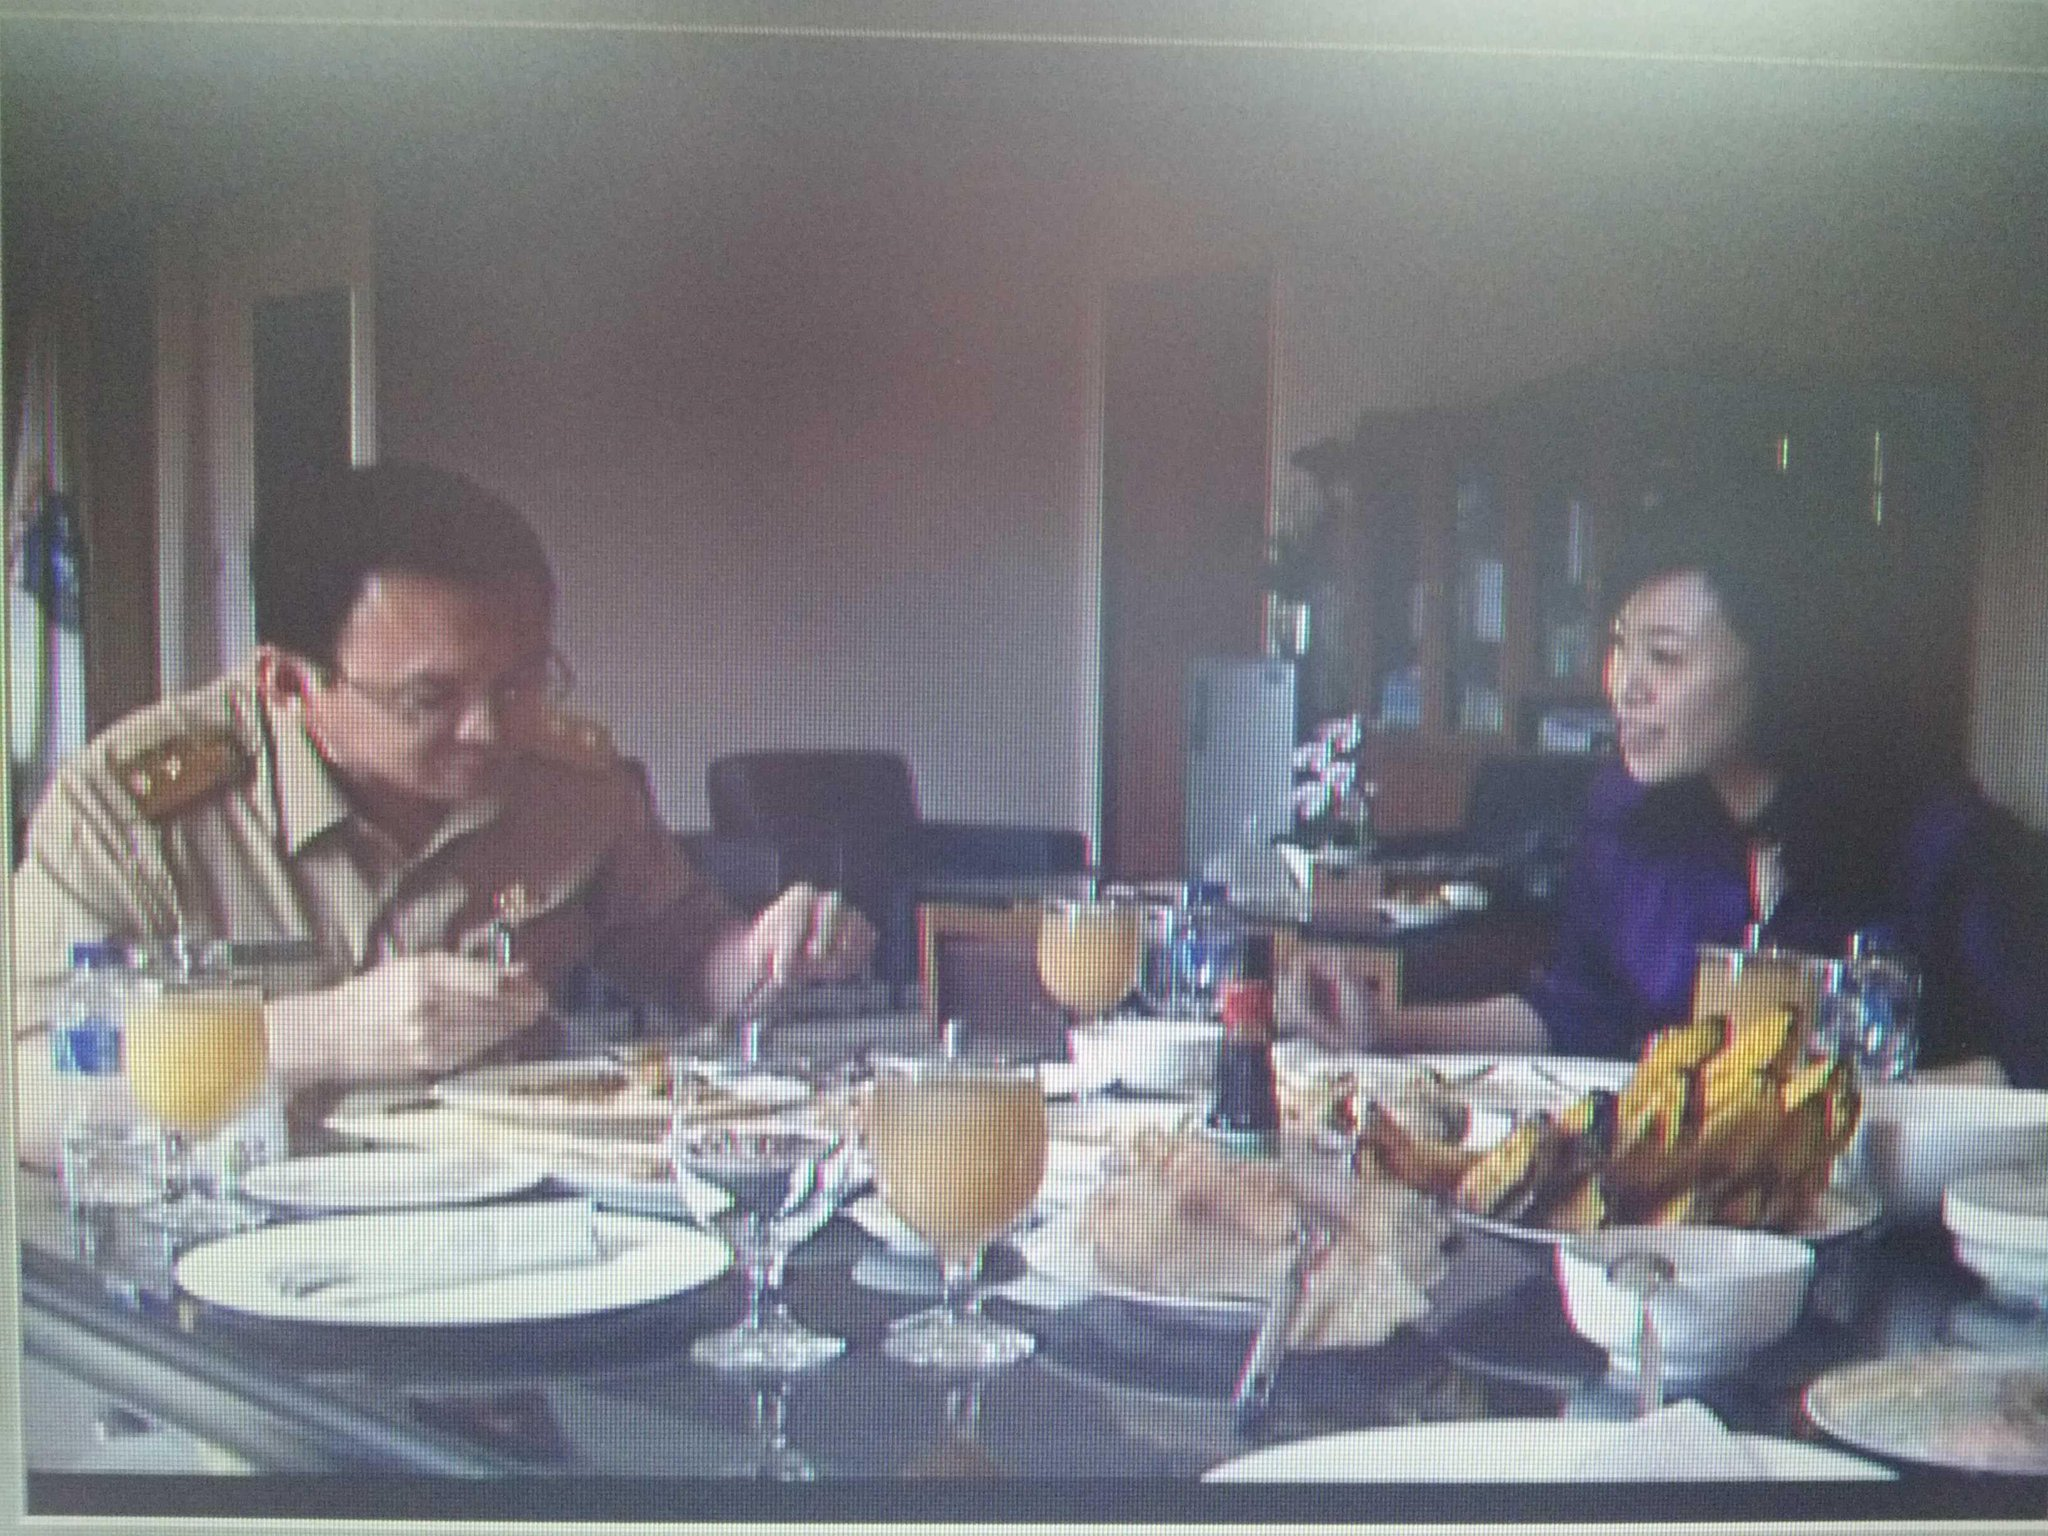 Watch exclusive interview with Ahok at 12pm Liputan 6 Siang @SCTV_ TODAY! @liputan6dotcom http://t.co/sbIbt9qys4